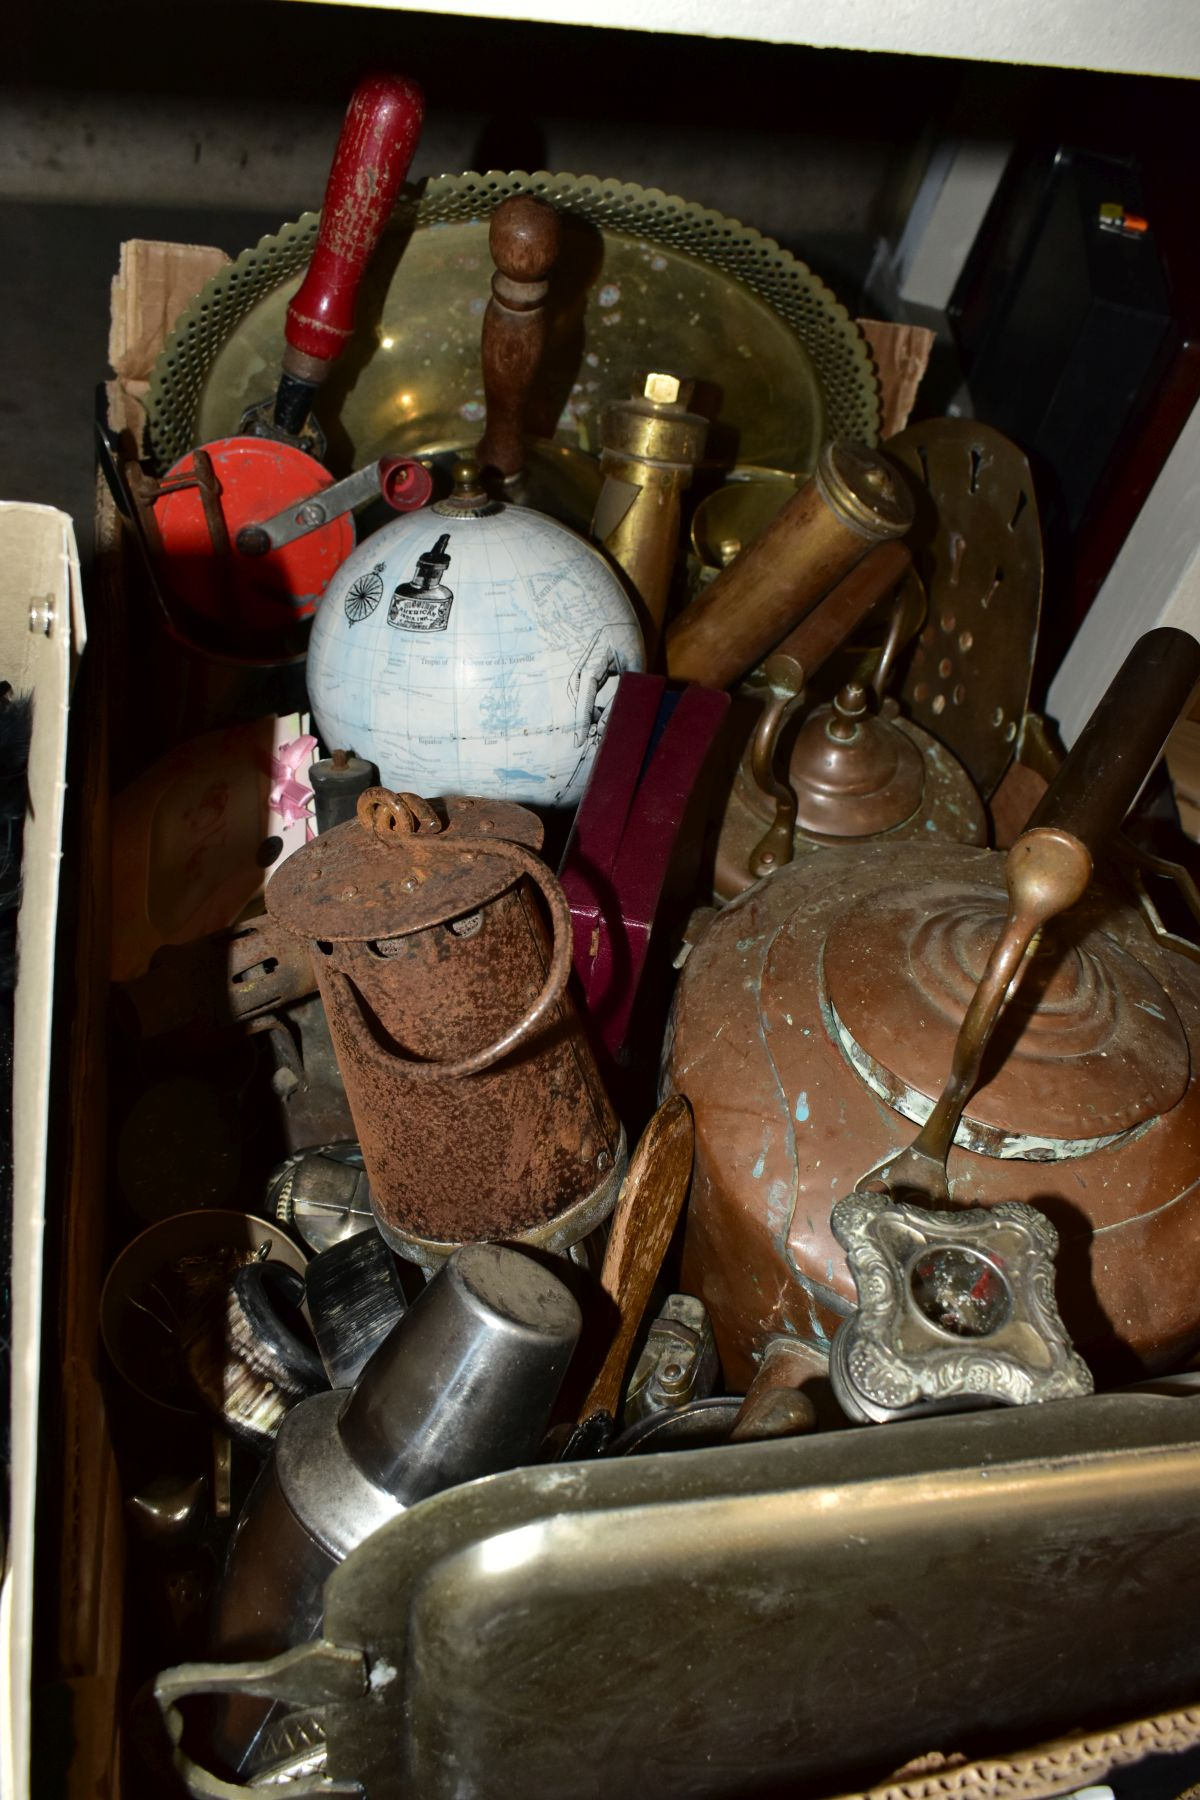 FOUR BOXES AND LOOSE METALWARE, HOUSEHOLD SUNDRIES, OIL LAMP, etc, to include board games, book - Image 13 of 16